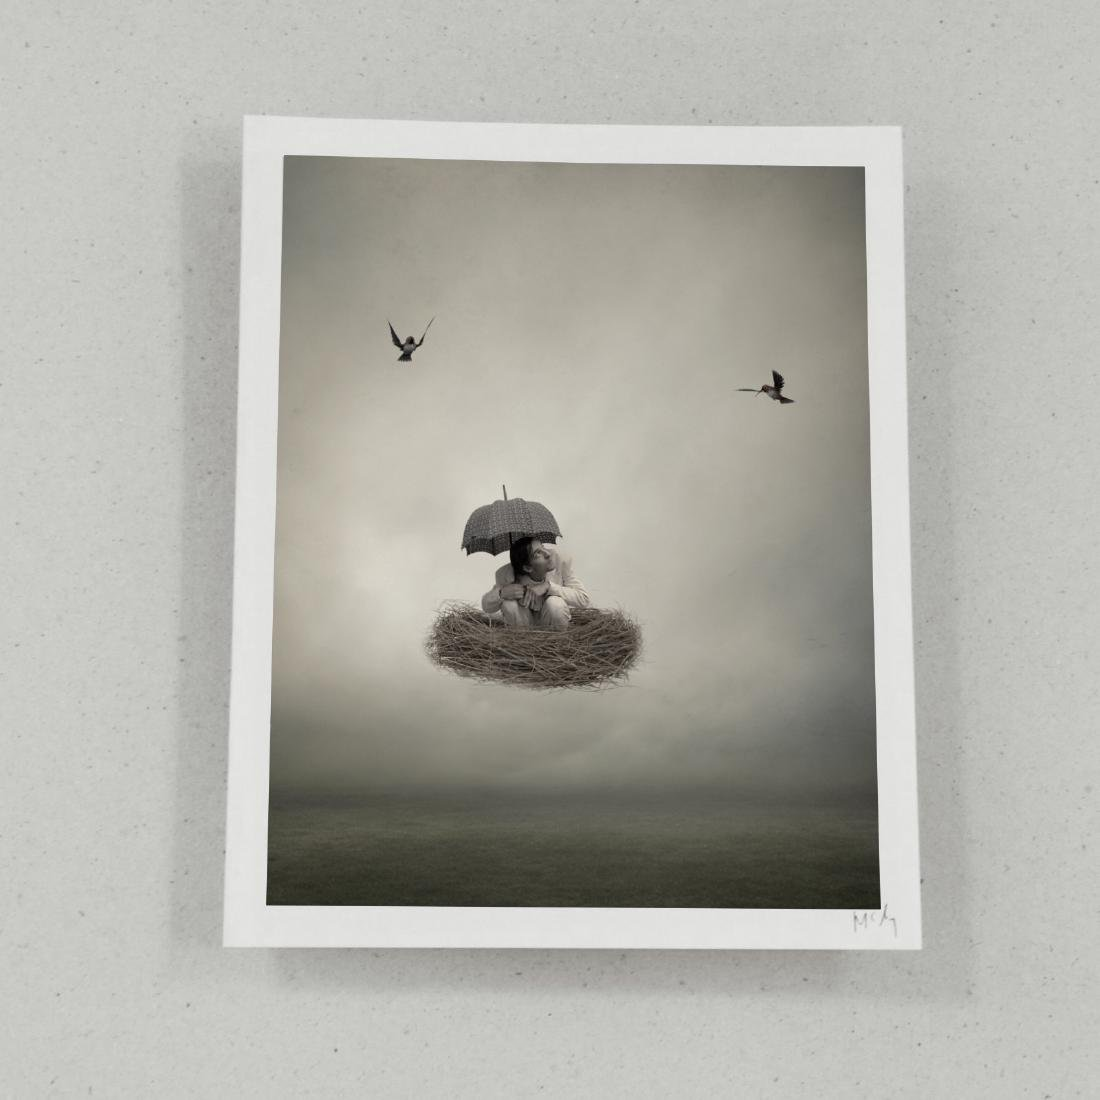 Philip Mckay - Airborne Folio - Six Prints - 2